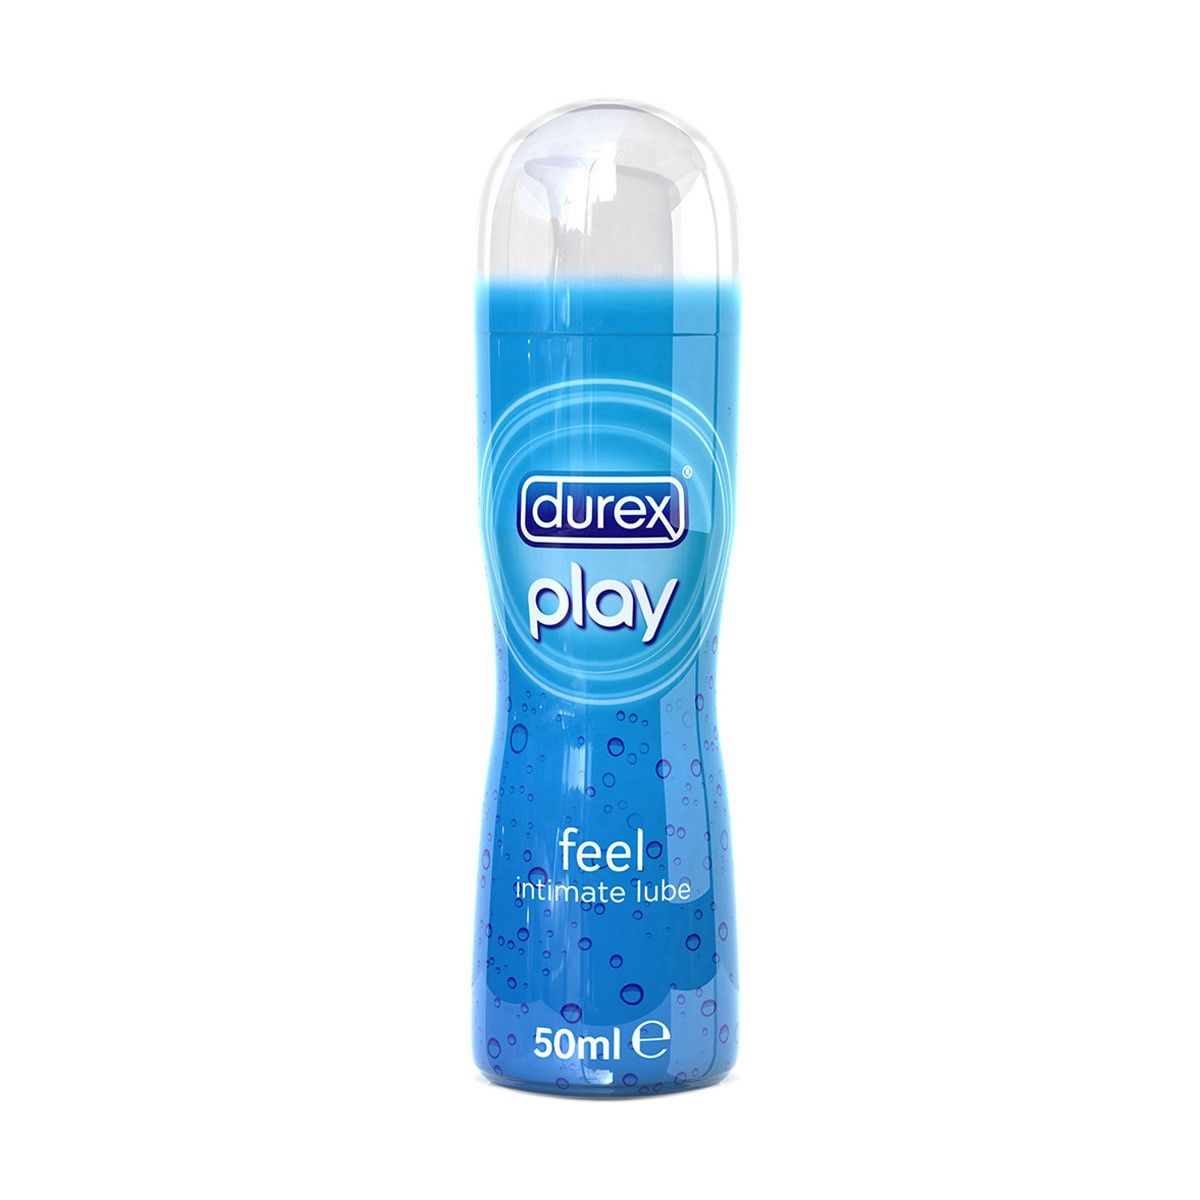 Durex Extra Safe Condoms Are Designed For Those Who Want Ultimate Kondom Reassurance And Don